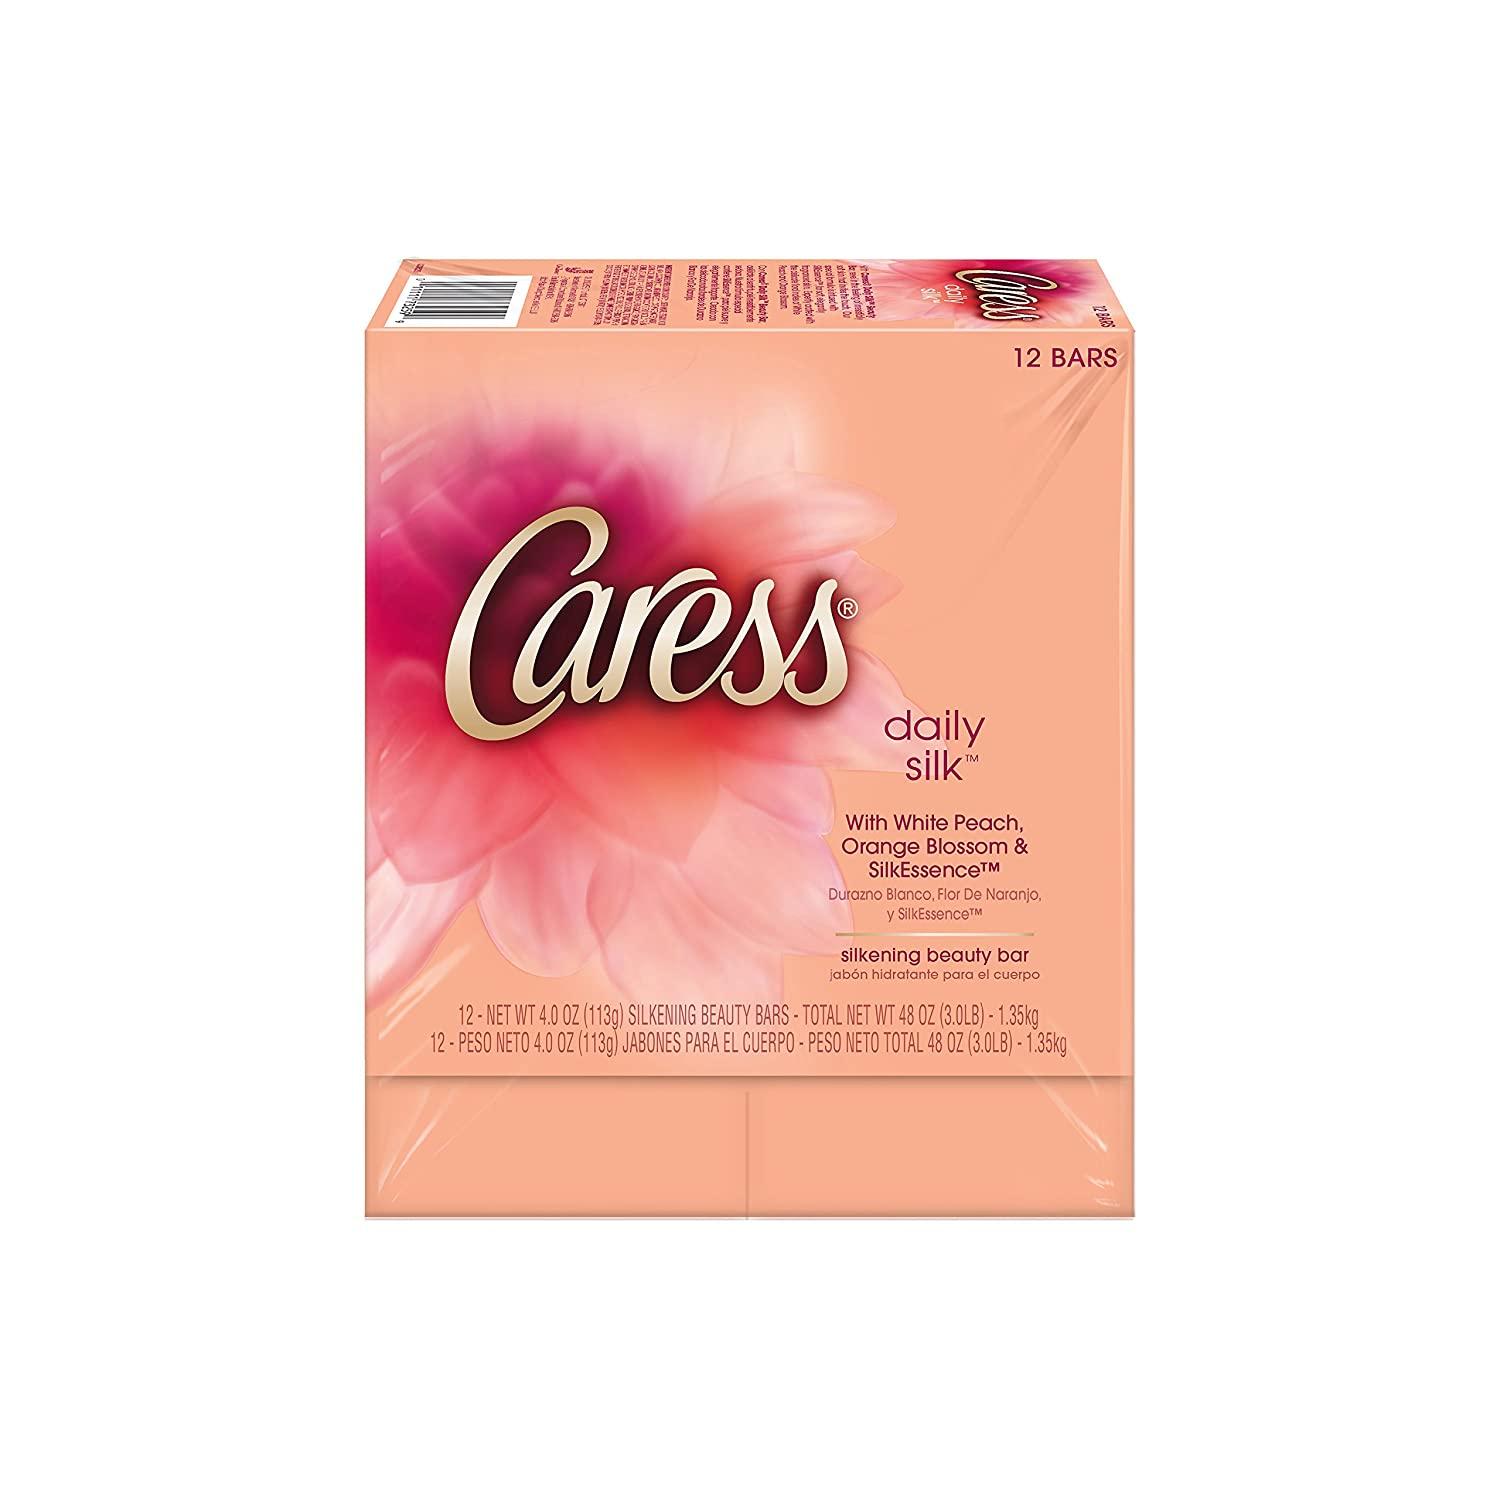 Caress Beauty Bar, Daily Silk 4 oz, 12 Bar, Pack of 2